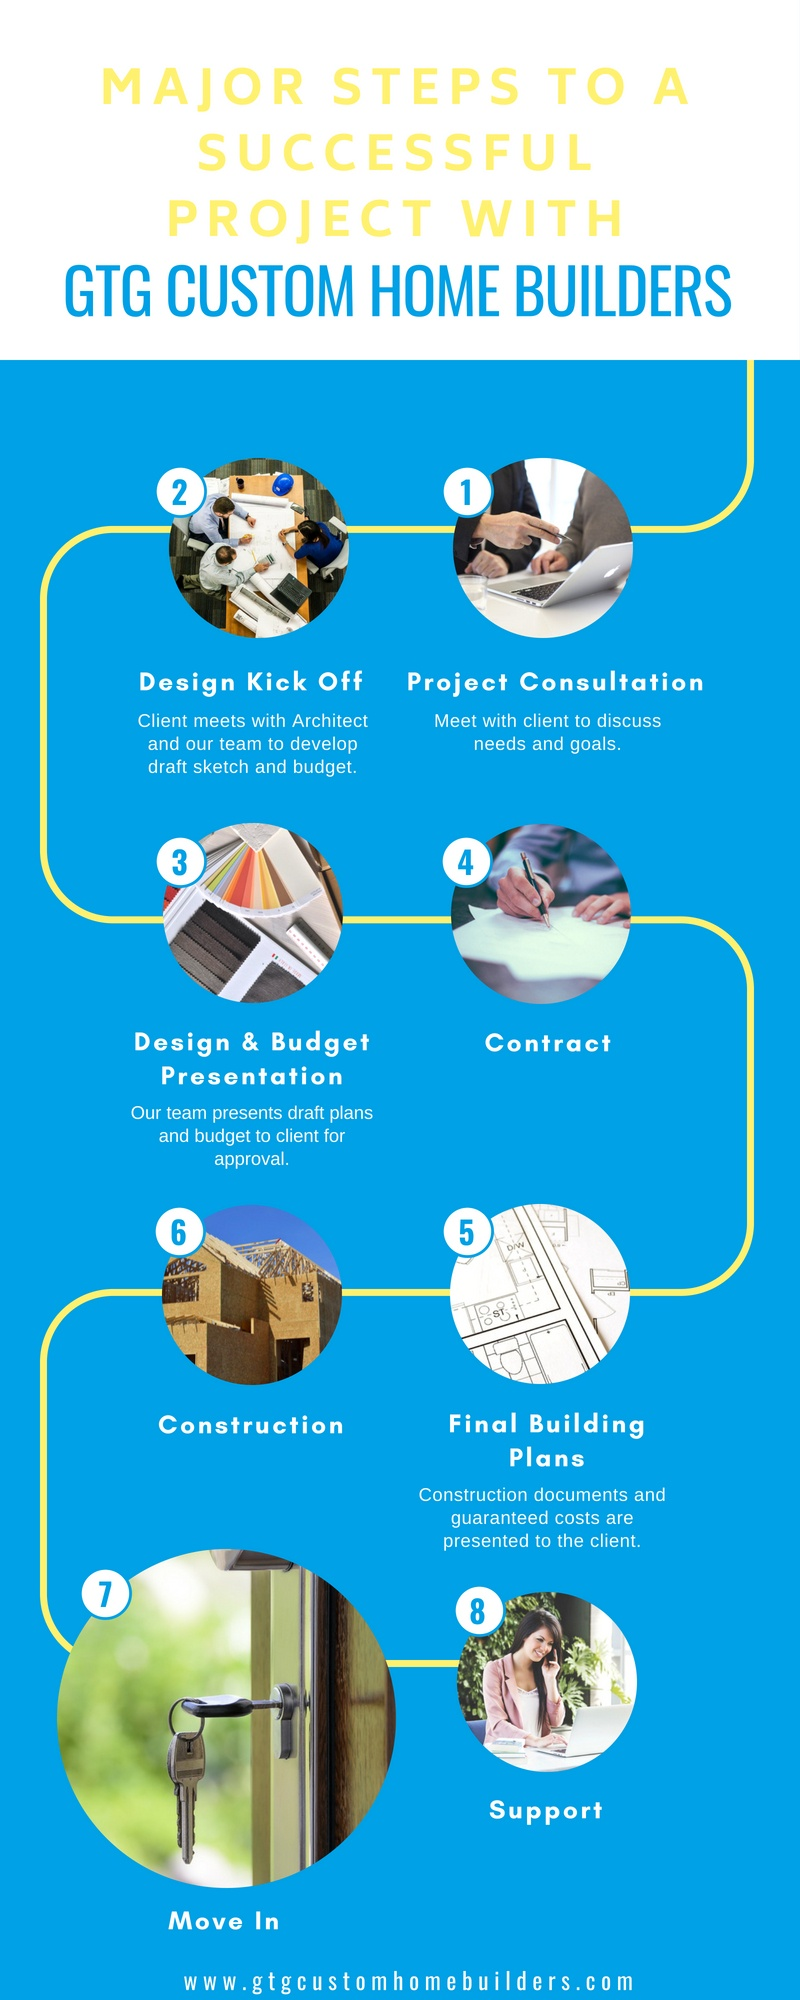 Steps_to_a_Successful_Project_with_GTG_Custom_Home_Builders